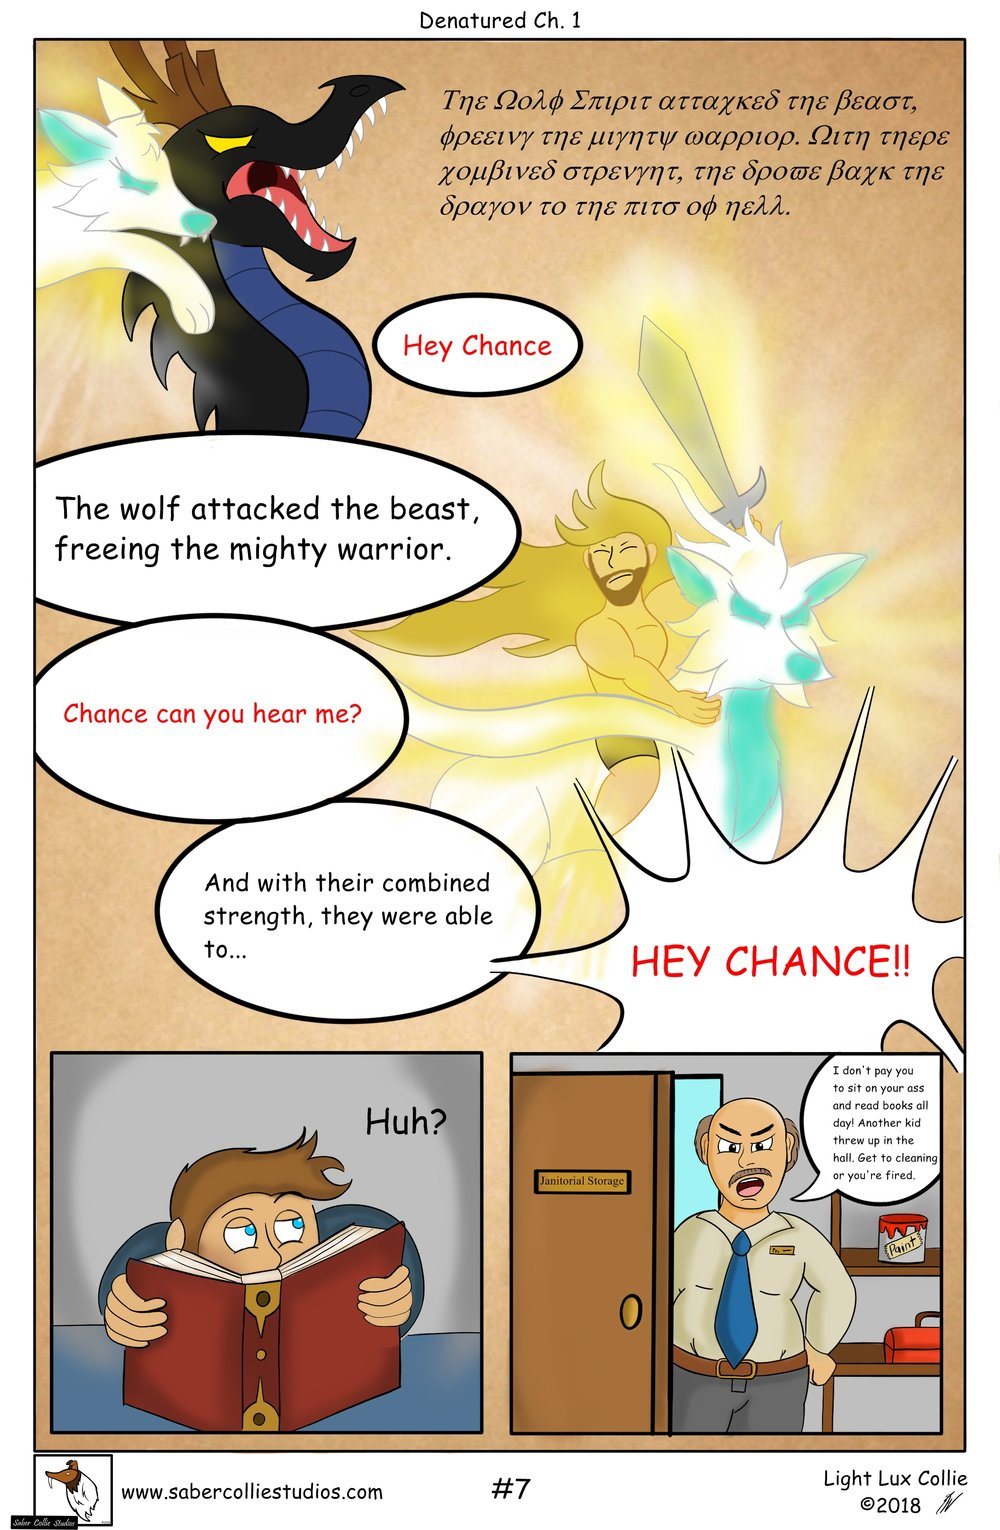 Denatured Chapter 1 Page 7 .jpg